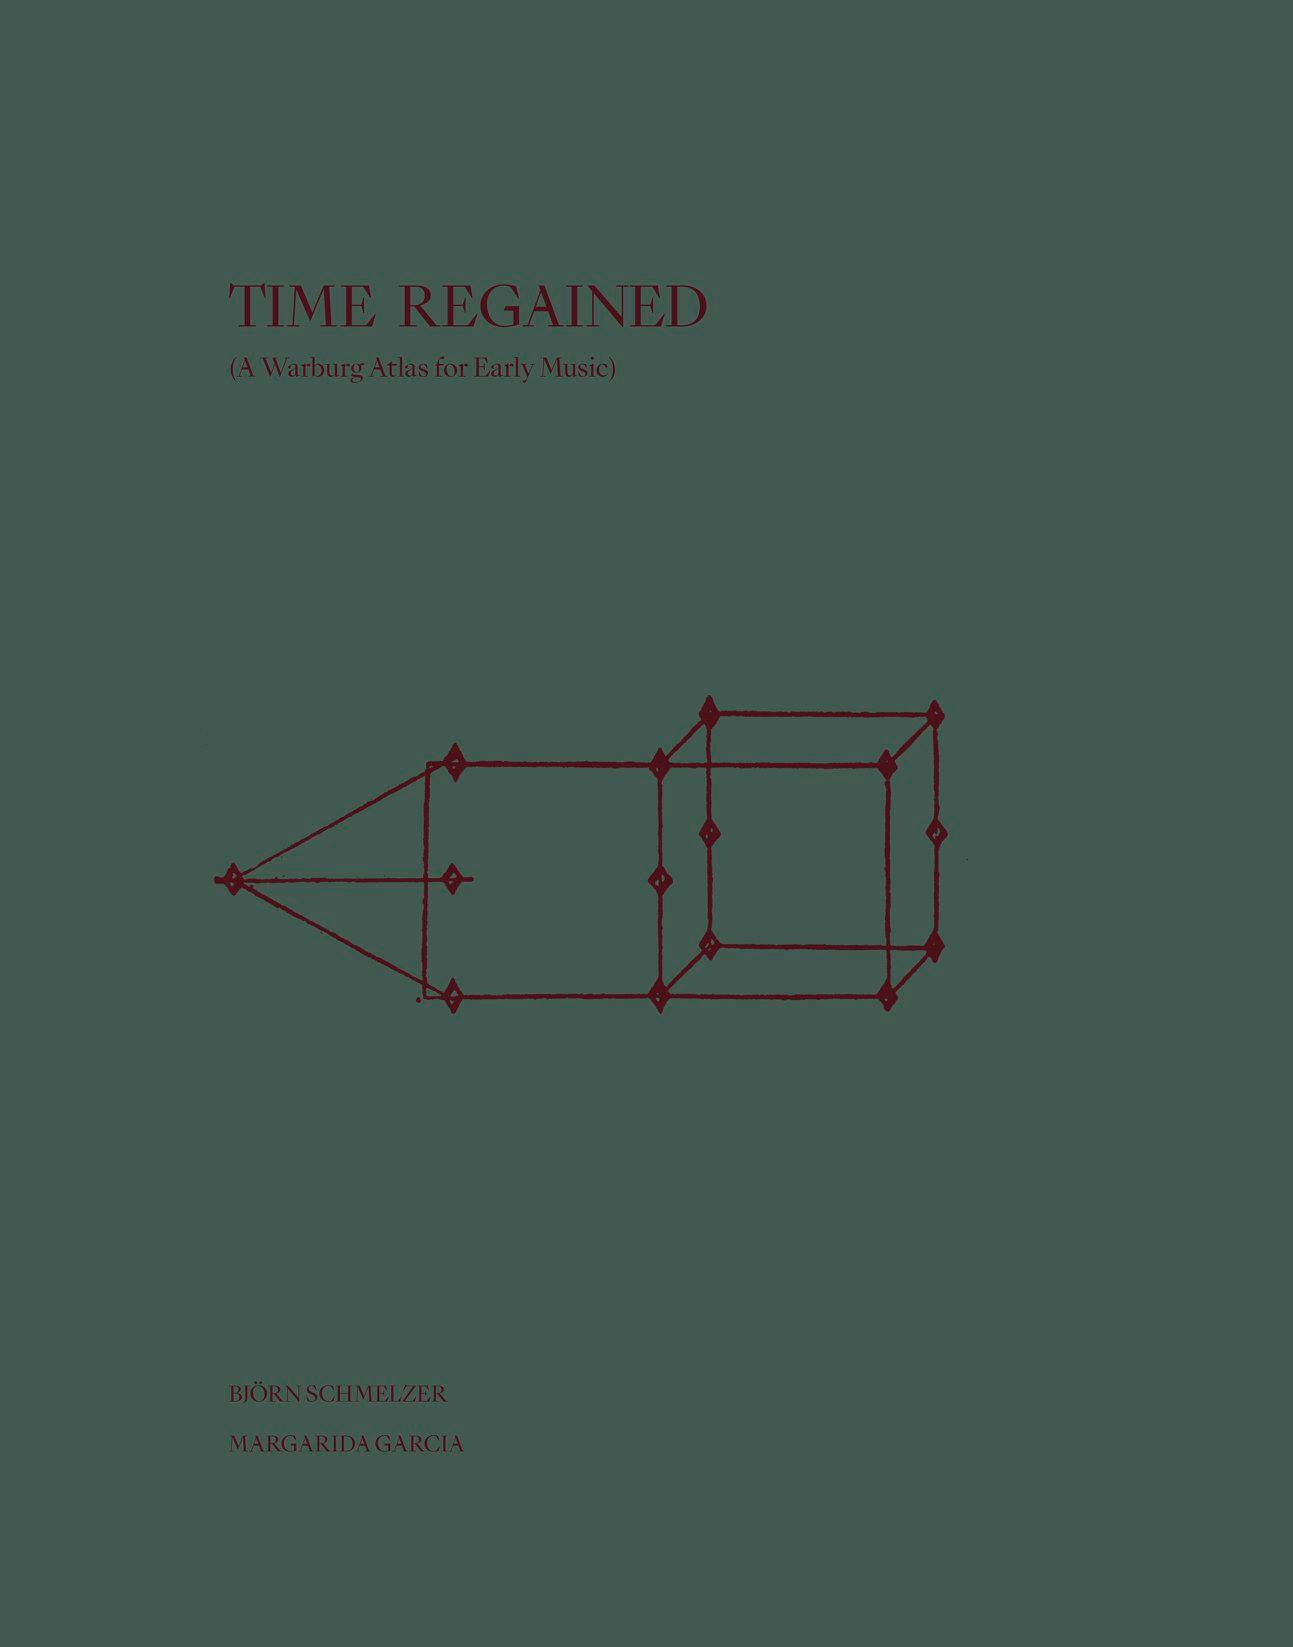 hight resolution of bj rn schmelzer presents the exhibition and the book time regained a warburg atlas for early music 4 pm at the janskerk so that s now